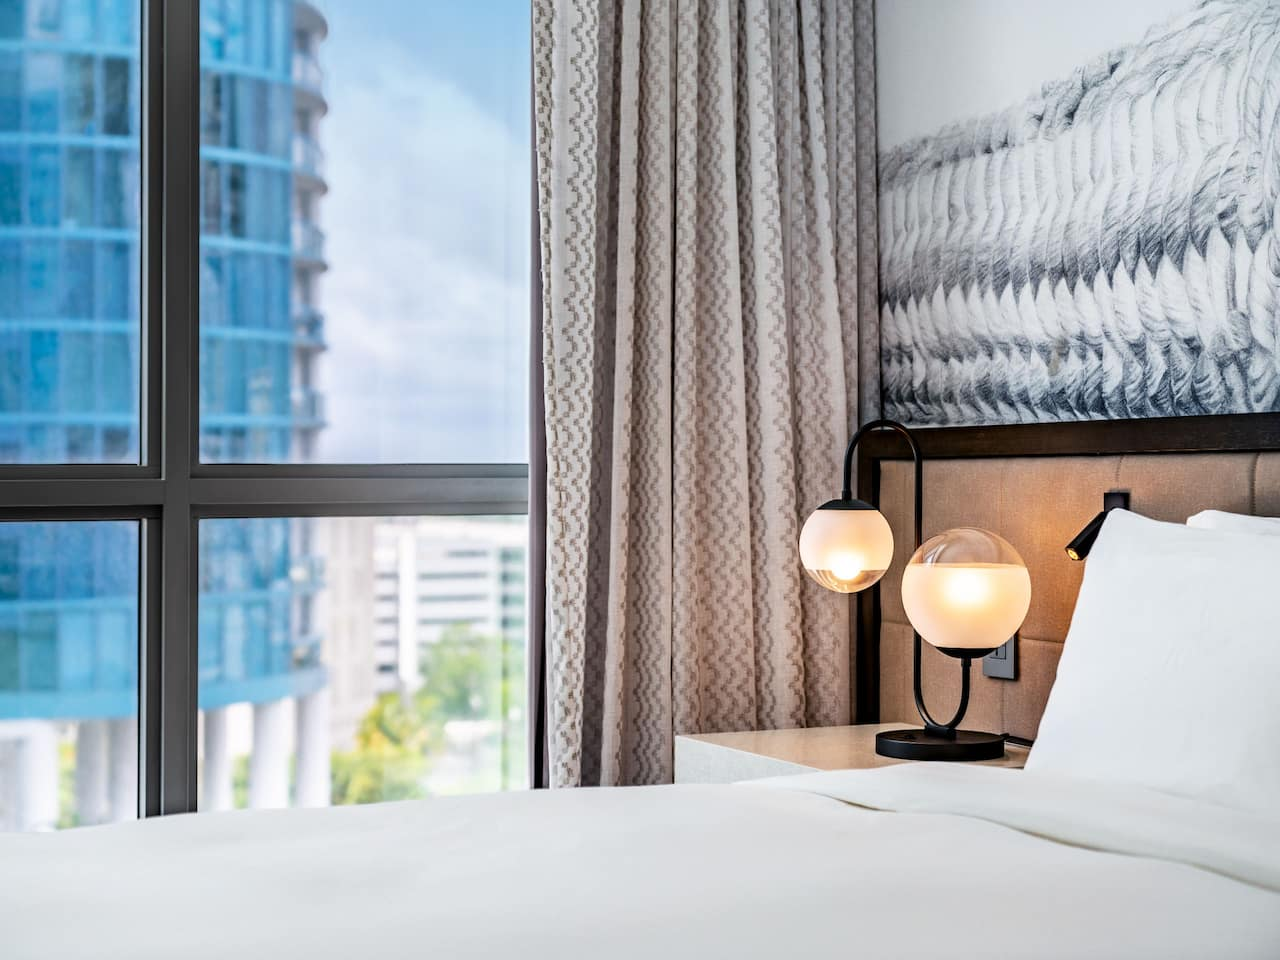 Close Up Of The Hotel Bed Next to a Window Overlooking Downtown Fort Lauderdale on Las Olas Blvd